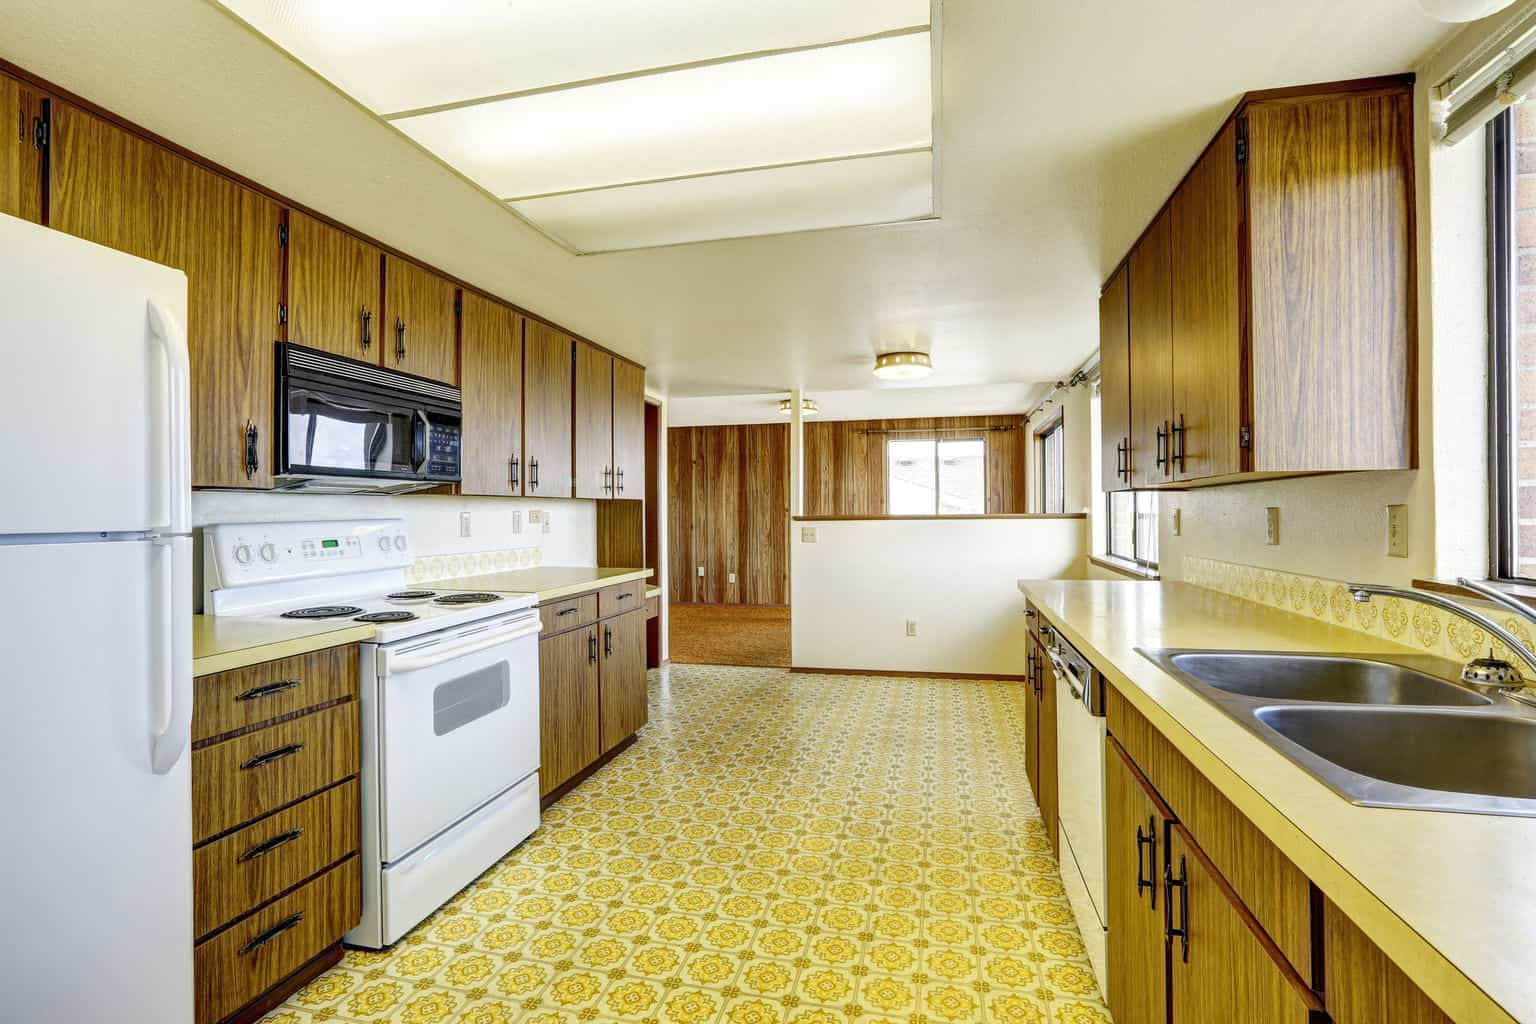 Floor Linoleum For Kitchens